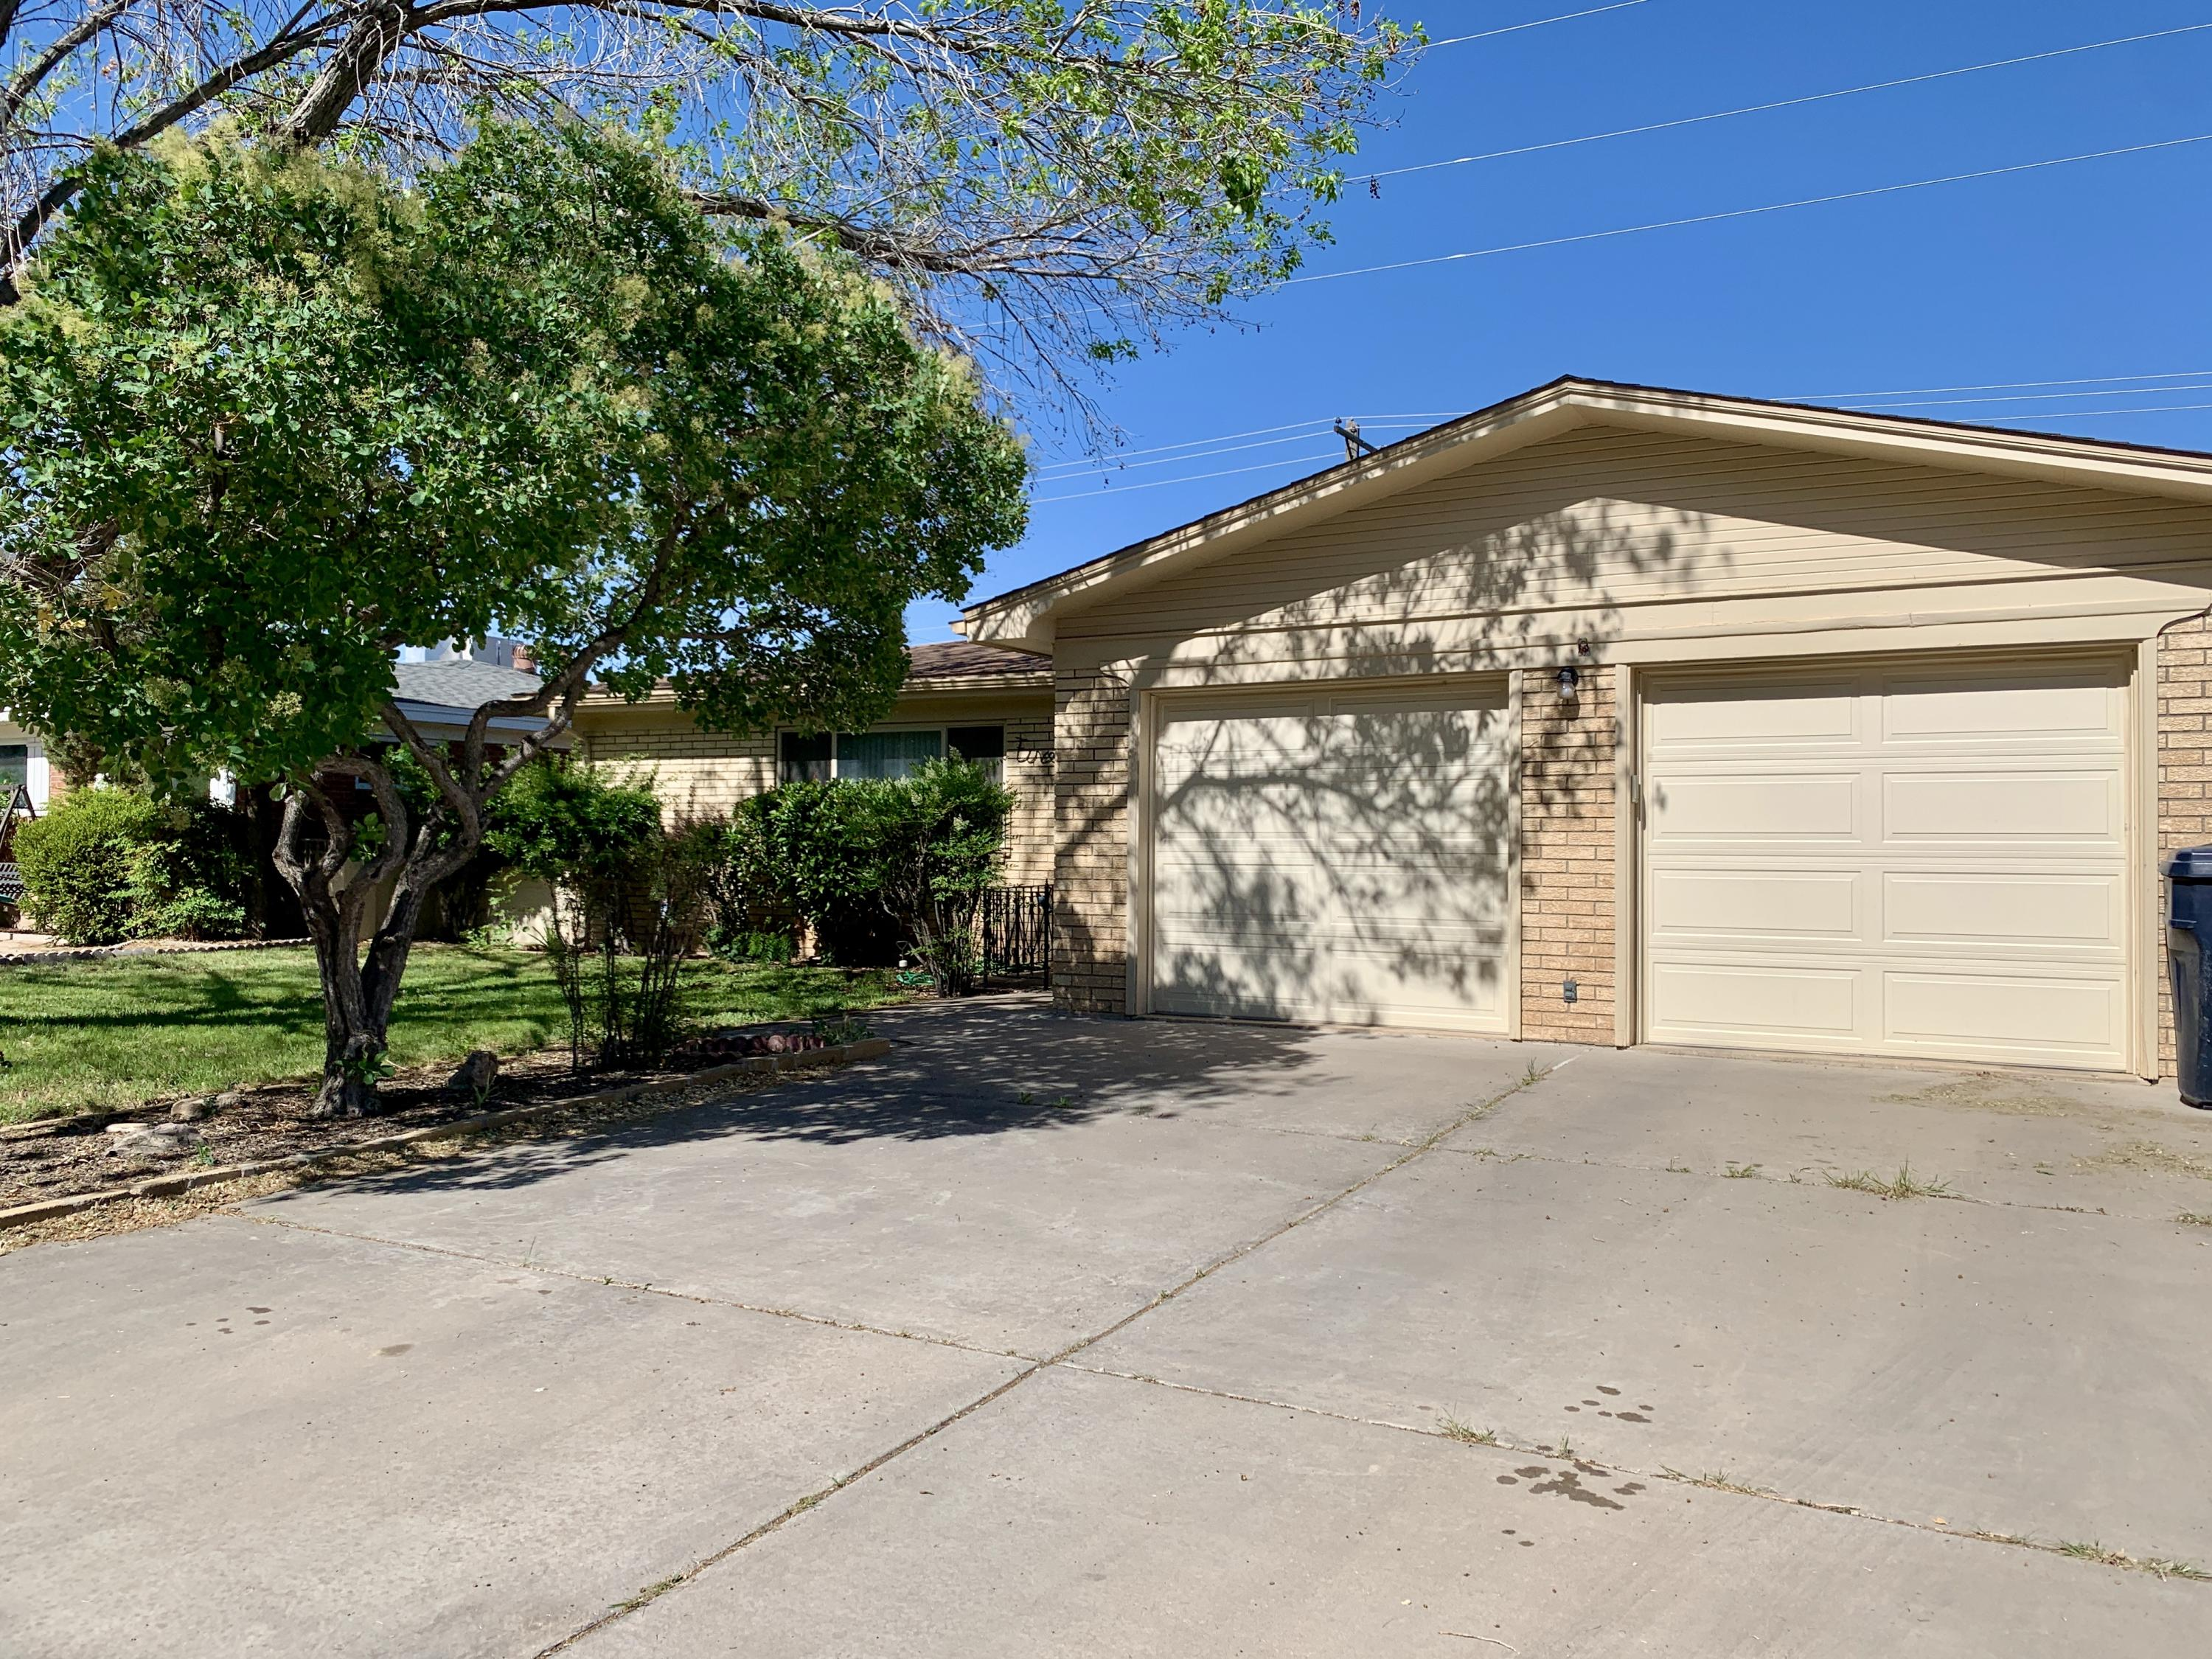 Come see this charming brick home centrally located near shopping and just minutes from UNM.  This great home features beautiful recently refinished hardwood floors 2 living areas, master suite with claw foot tub. Updated windows and new roof still under warranty round out this move in ready home.